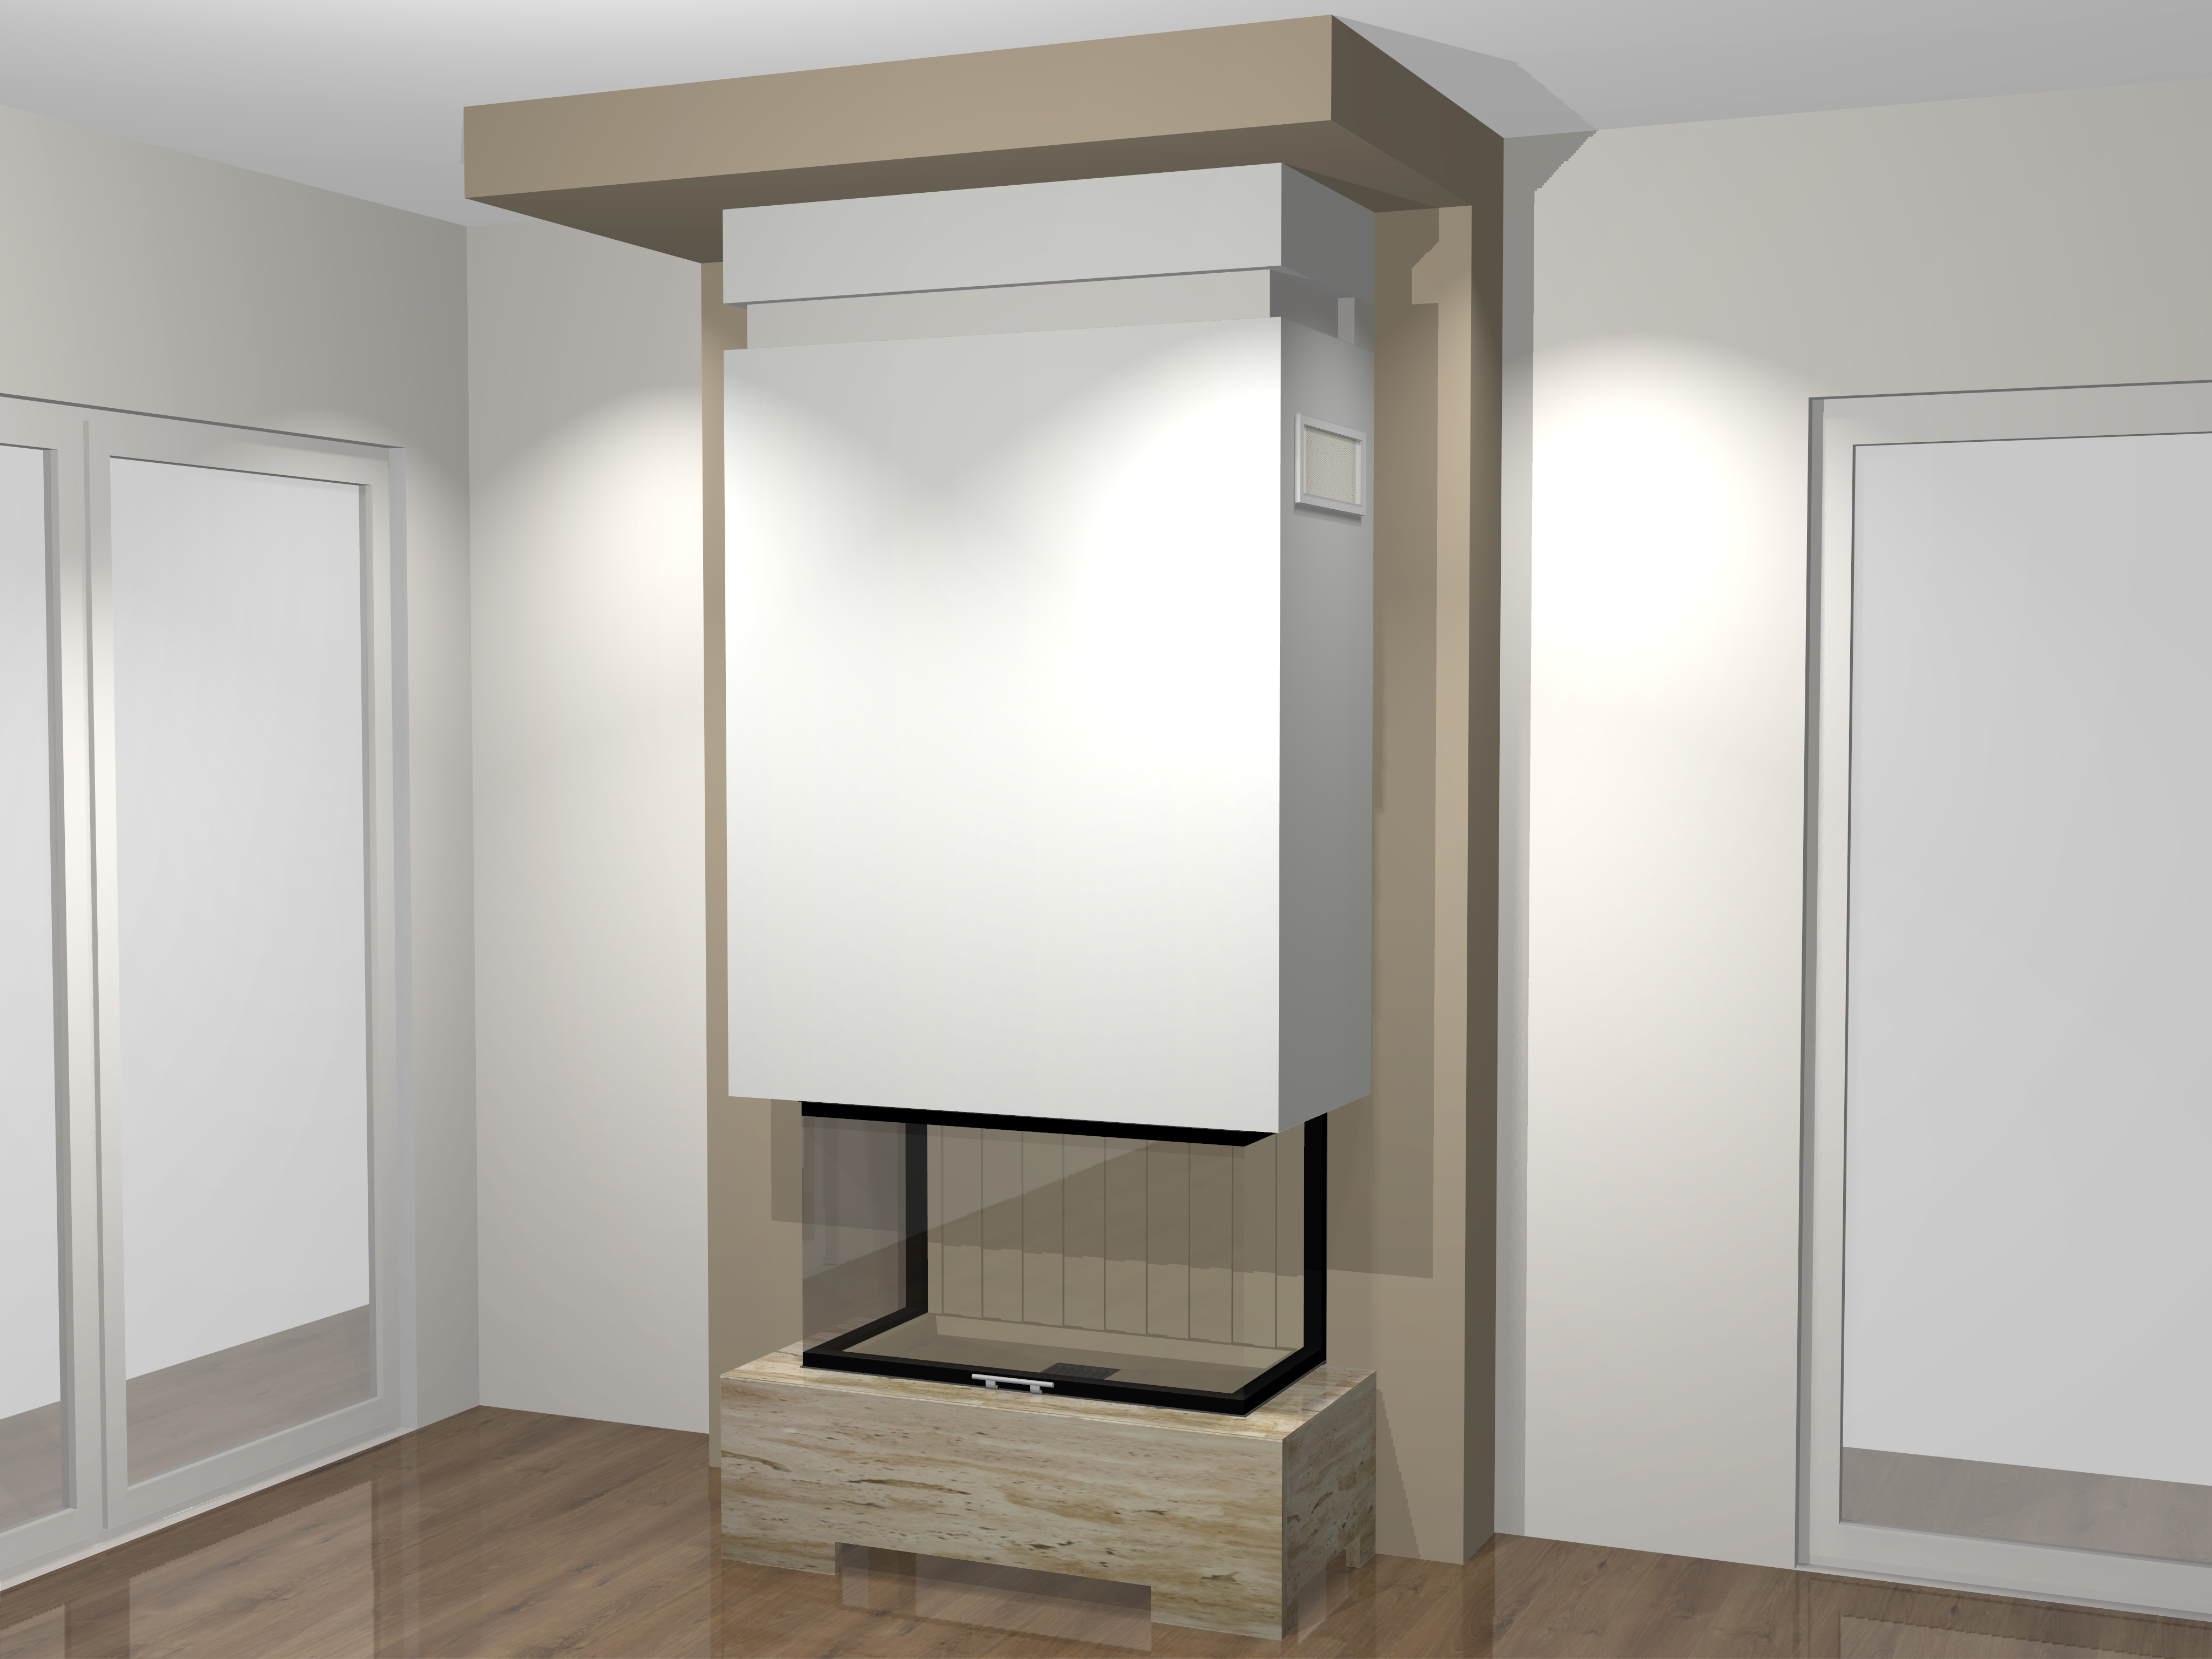 dreiseitiger kamin a 33 3 mit spartherm mit montage www. Black Bedroom Furniture Sets. Home Design Ideas